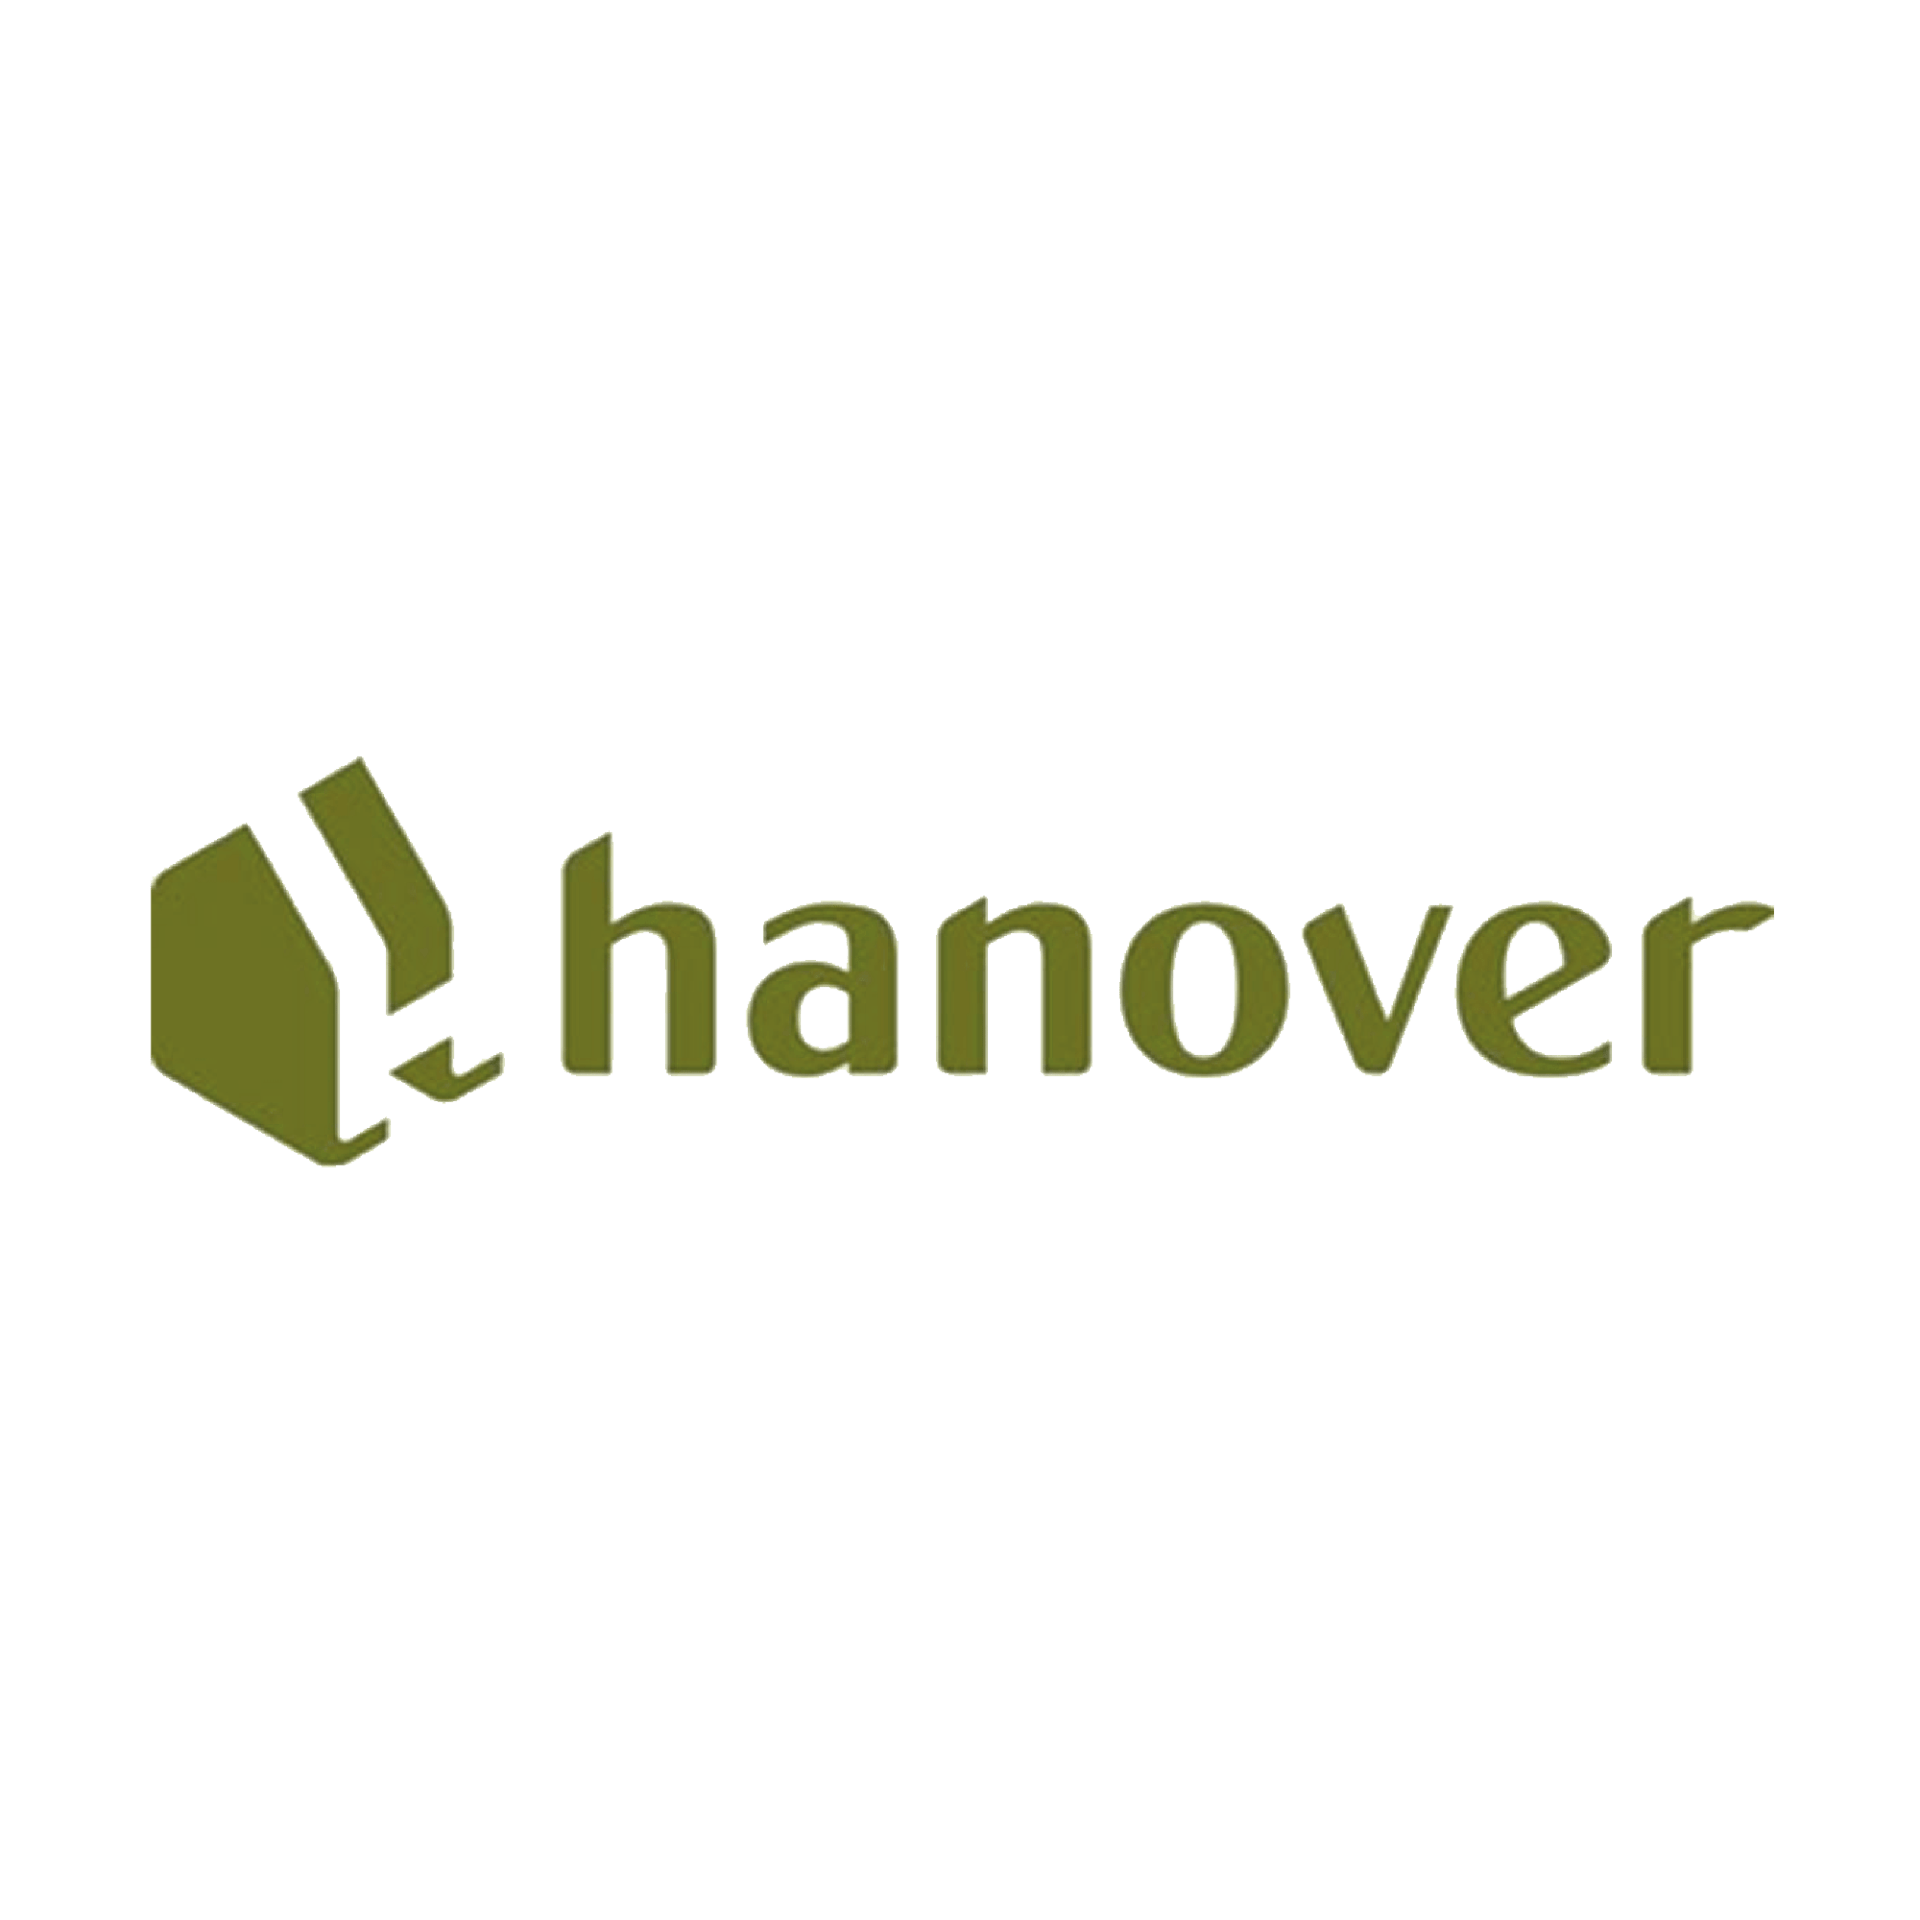 Hanover House - ted Learning client